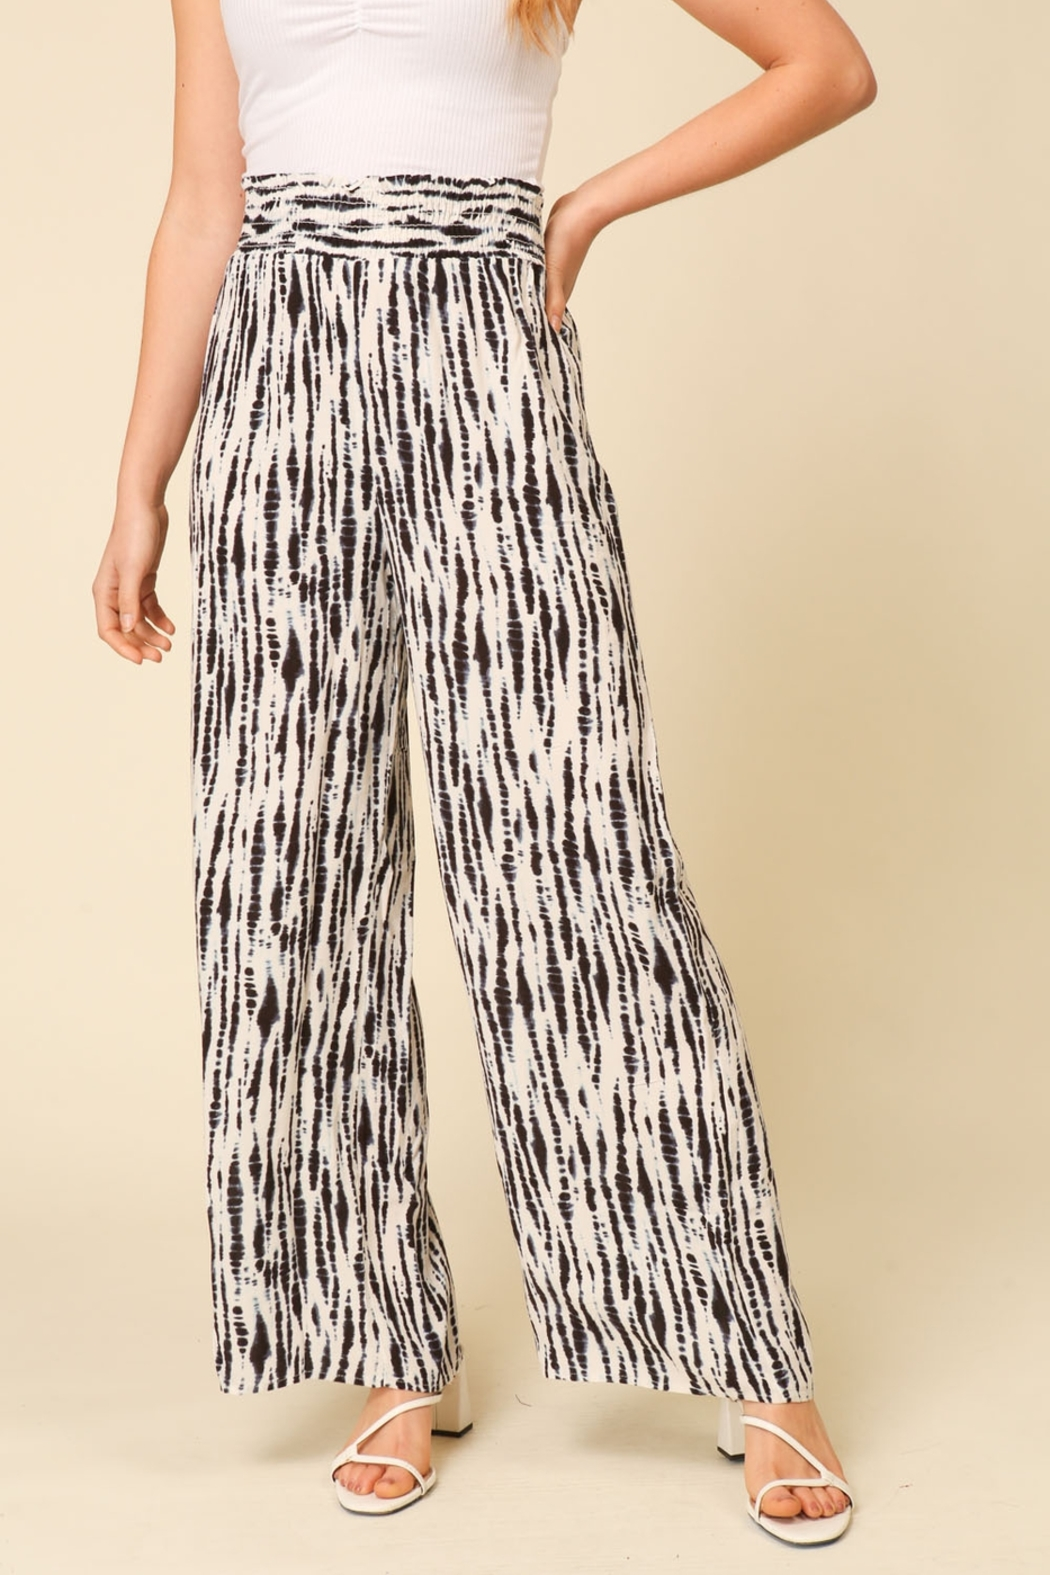 Lyn -Maree's Smocked, Wide Leg Pants - Front Cropped Image